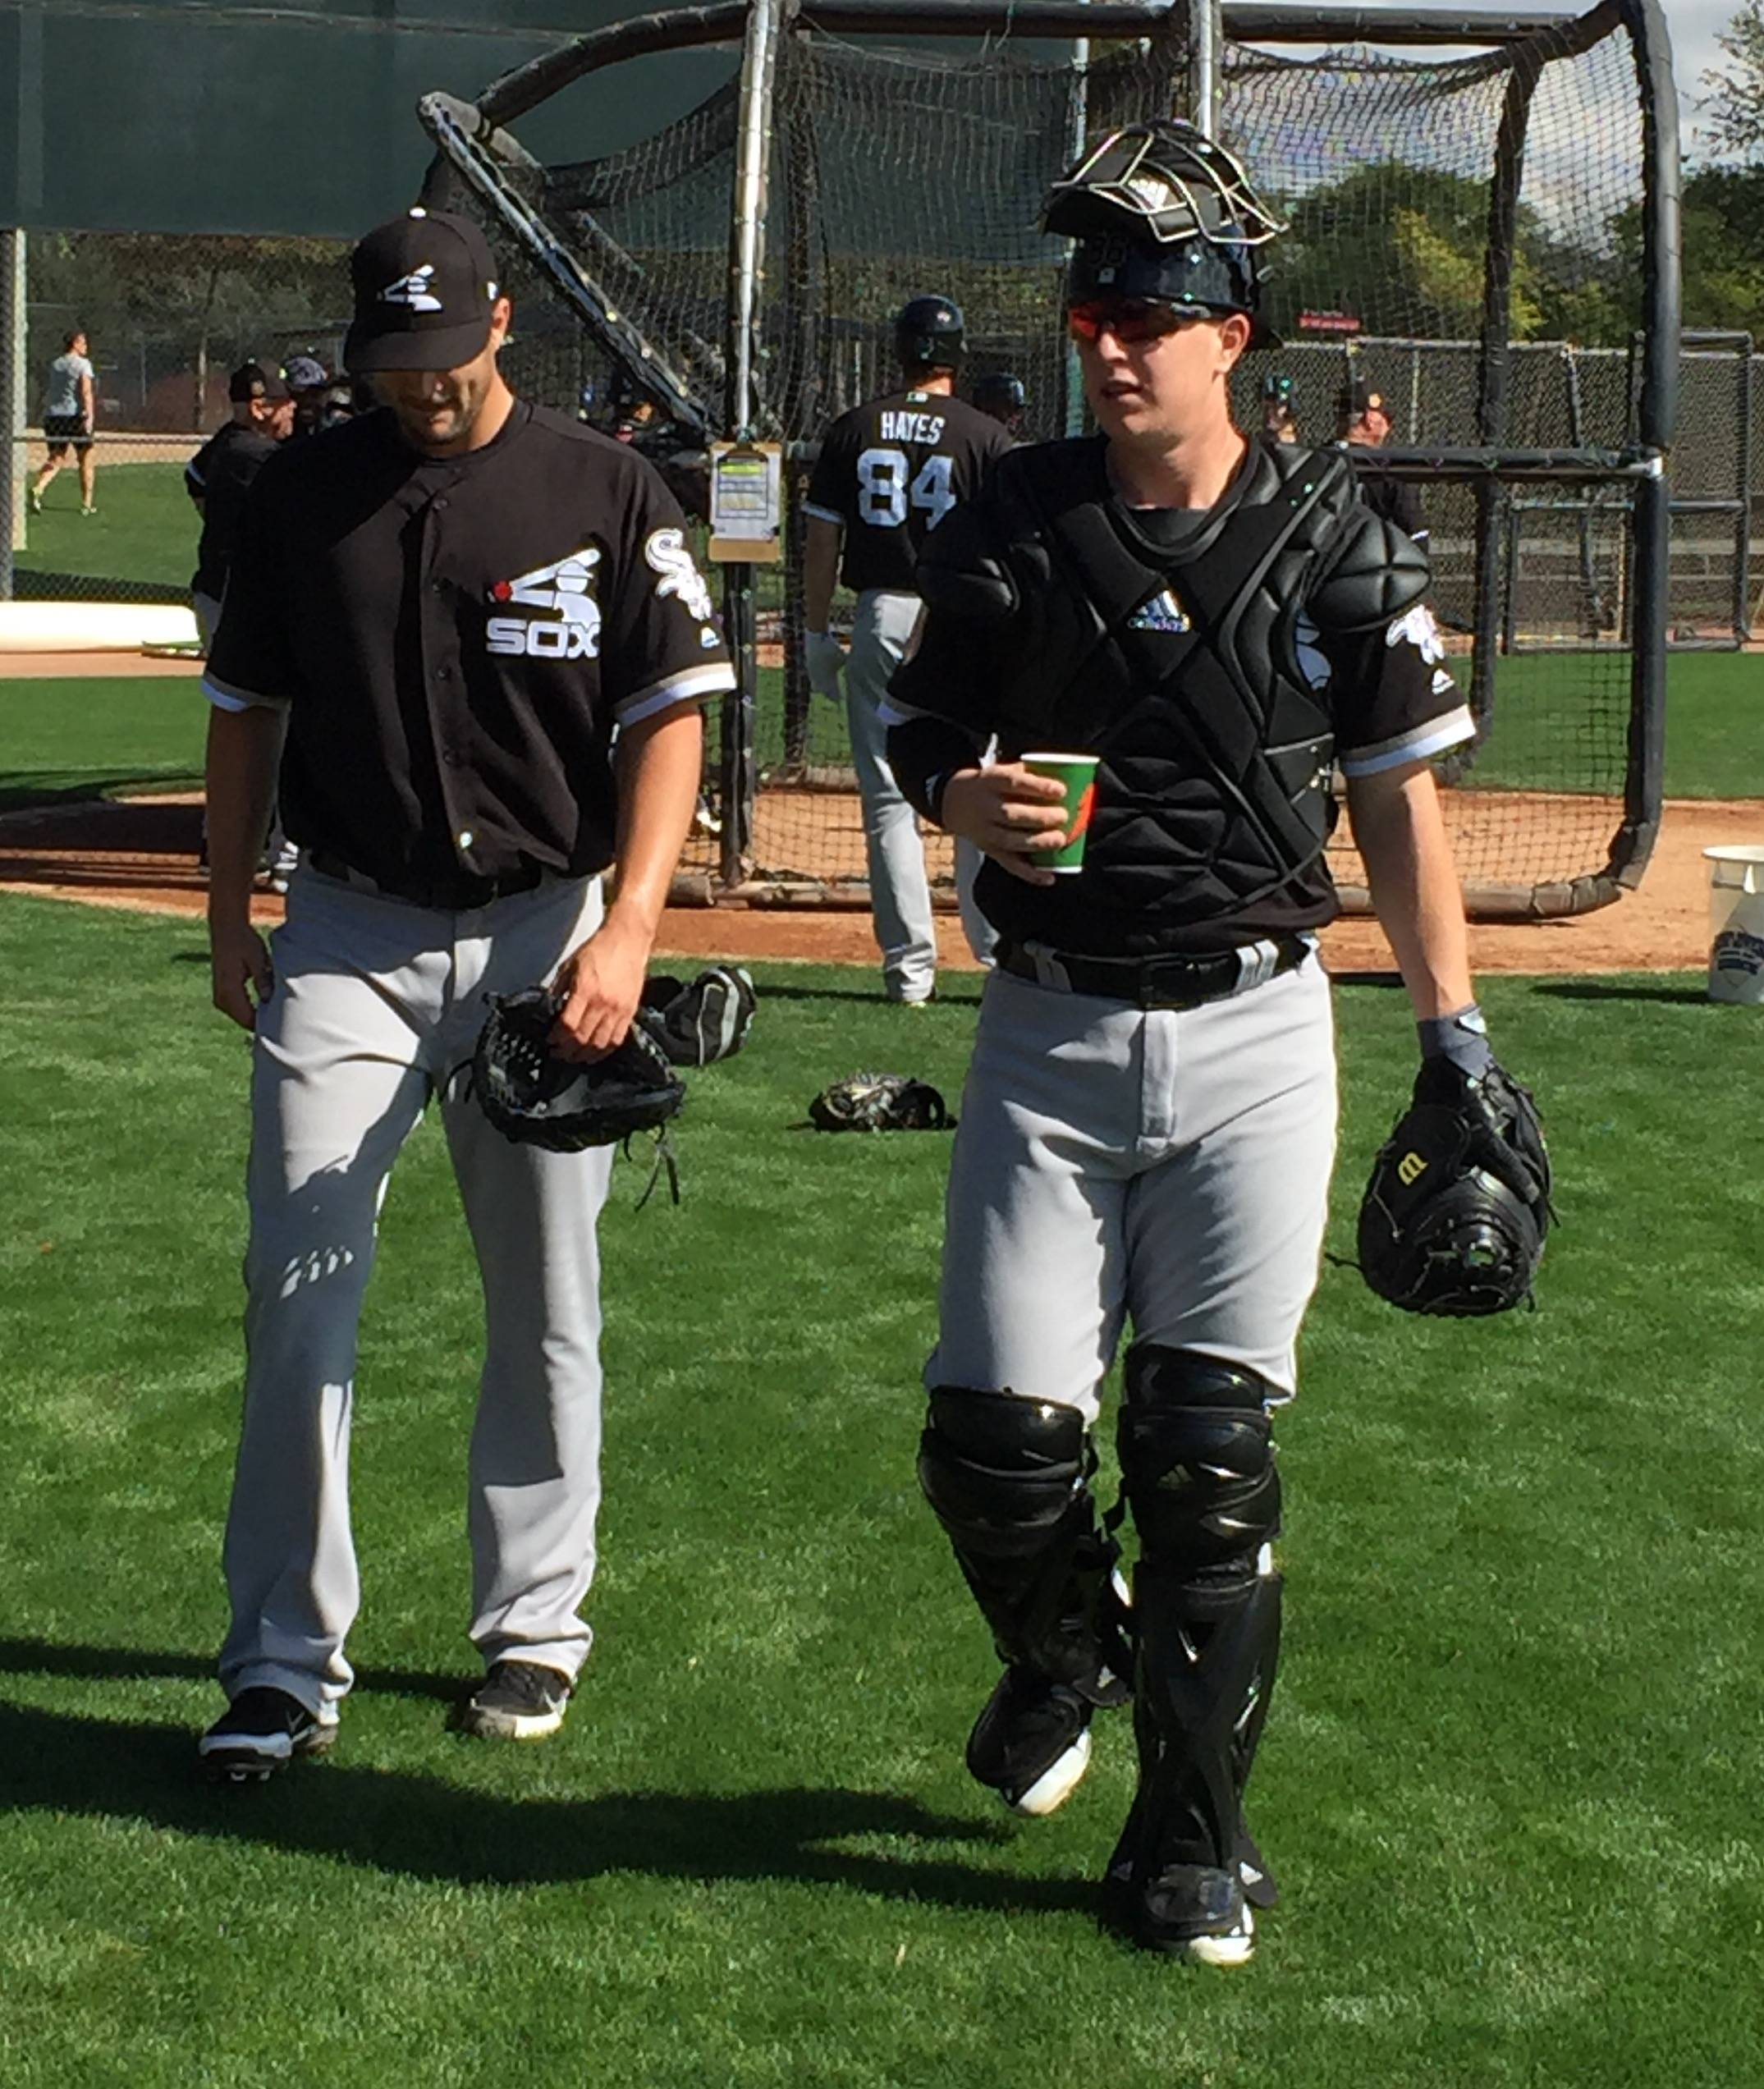 Scot Gregor/sgregor@dailyherald.com Chicago White Sox catcher Zack Collins continues to prove his doubters wrong when it comes to playing the position.